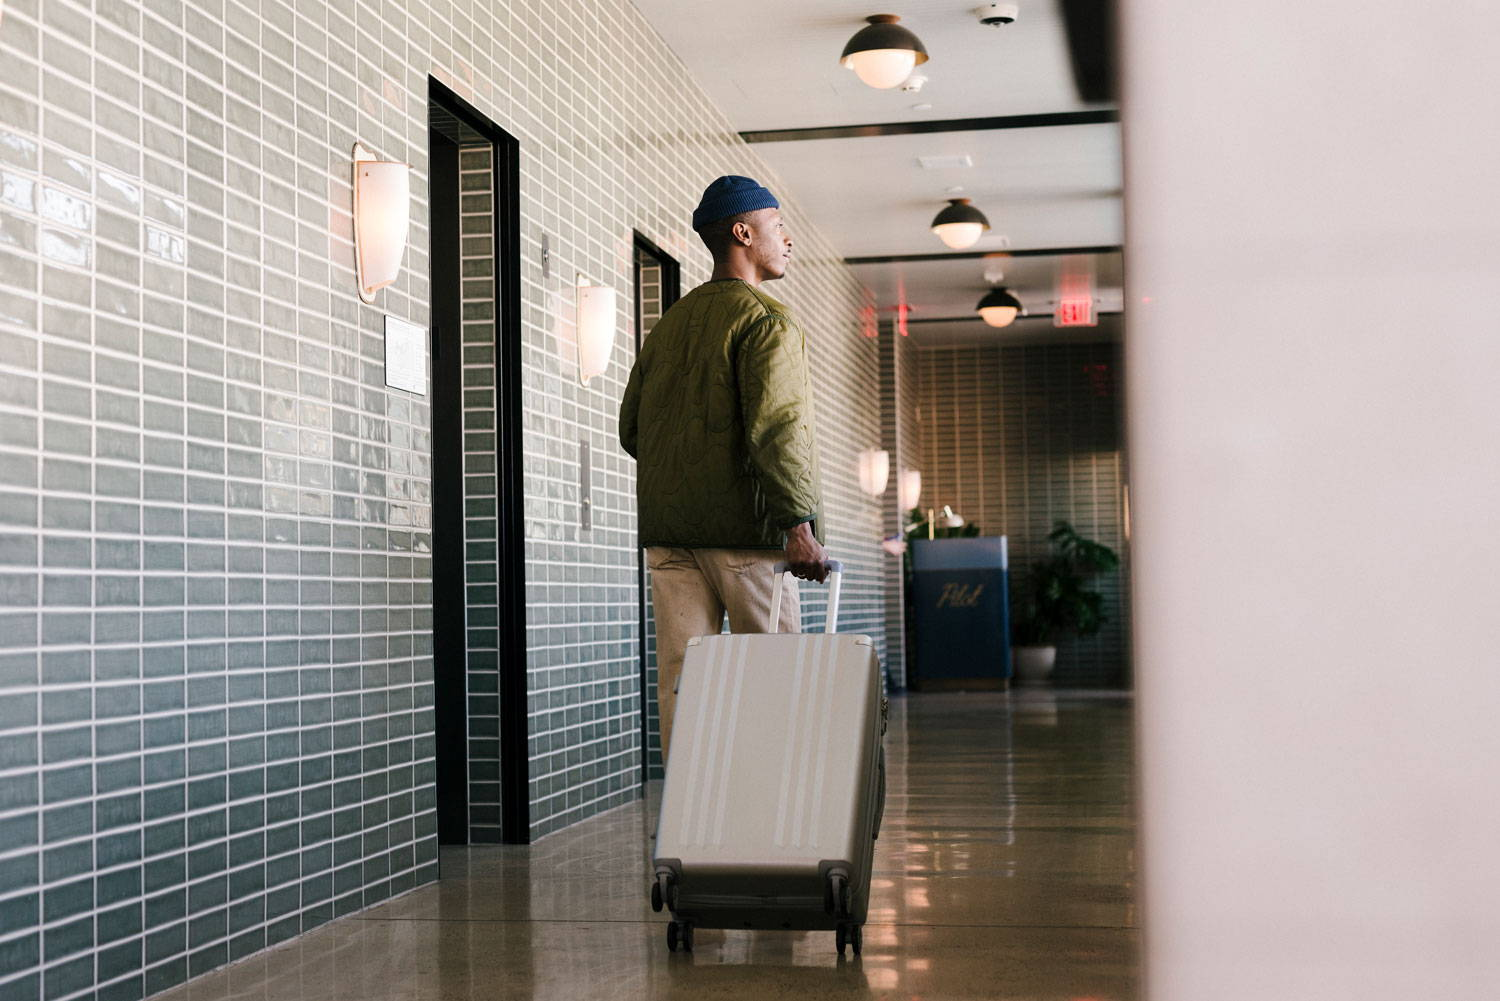 Male Model with the Ambeur Carry-on in Silver walking through hallway